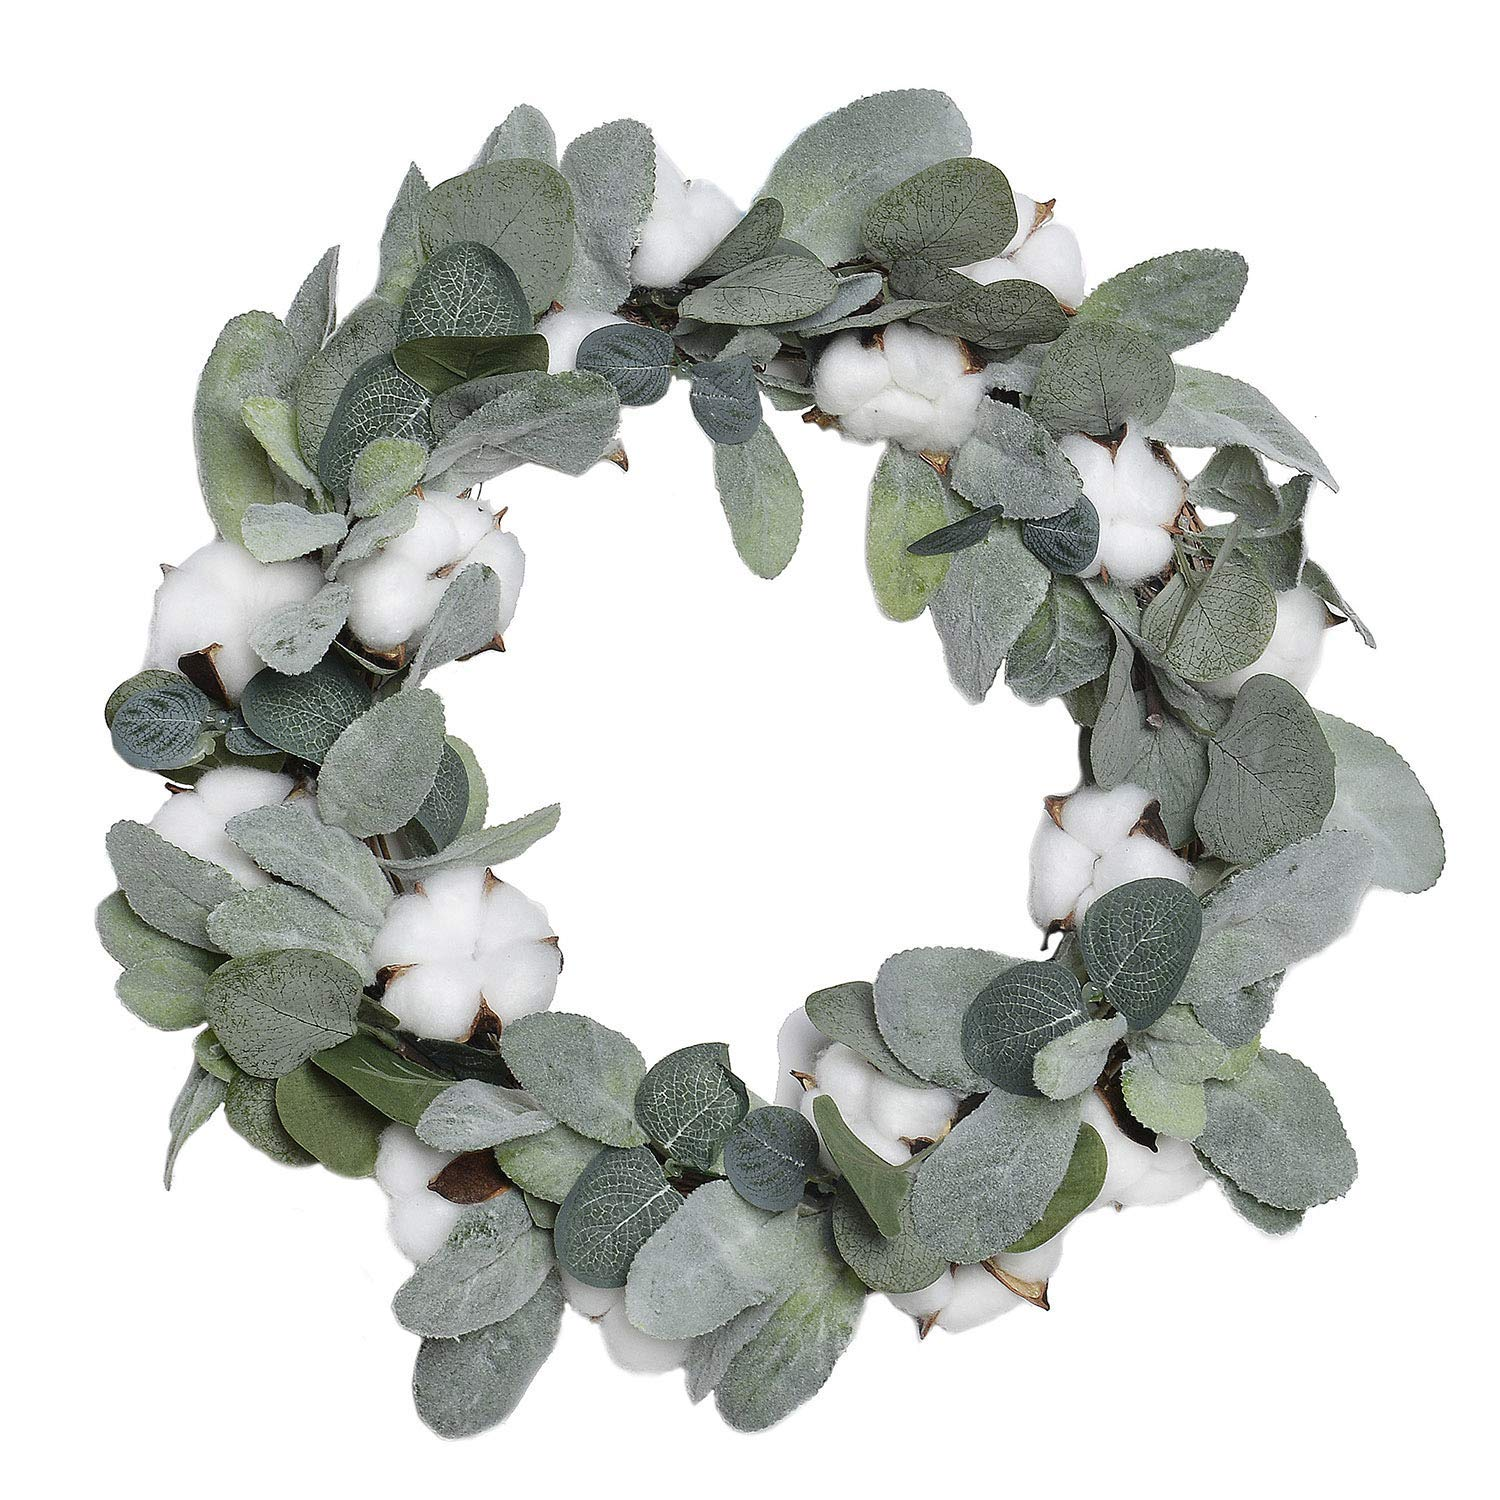 Favowreath 2018 Vitality Series Favo W48 Handmade 15 Inch Green Leaf Cotton Grapevine Wreath For Summer Fall Festival Celebration Front Door Wall Fireplace Laurel Eucalyptus Hanger Home Relaxed Decor Wreaths Home Kitchen